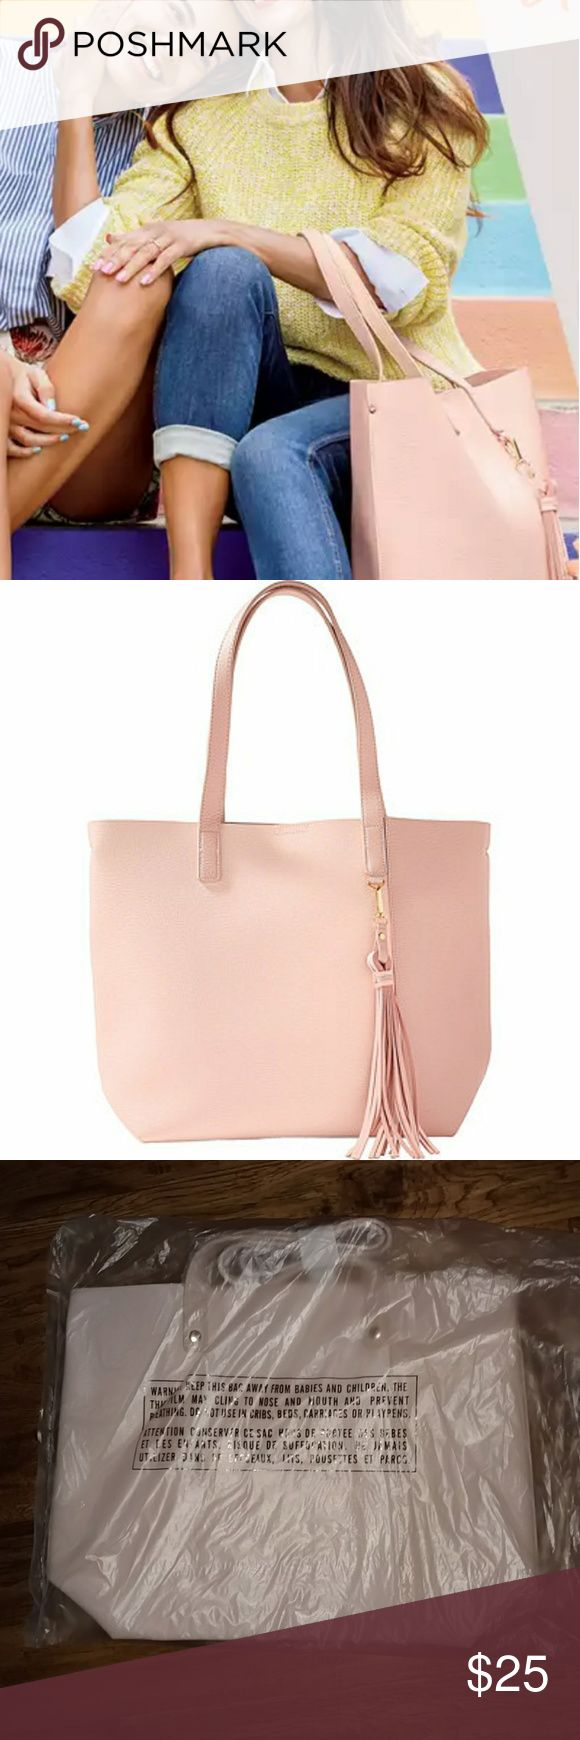 "Large Convertible Blush Pink Tote Large blush pink tote with long, tassle zipper pull.   Polyester, soft vegan leather feel.   A convertible tote that can transform from your classic tote into a bucket tote bag for double styling options.  Measure approximately 18.5"" wide by 14 tall  New with tags. boutique Bags Totes"